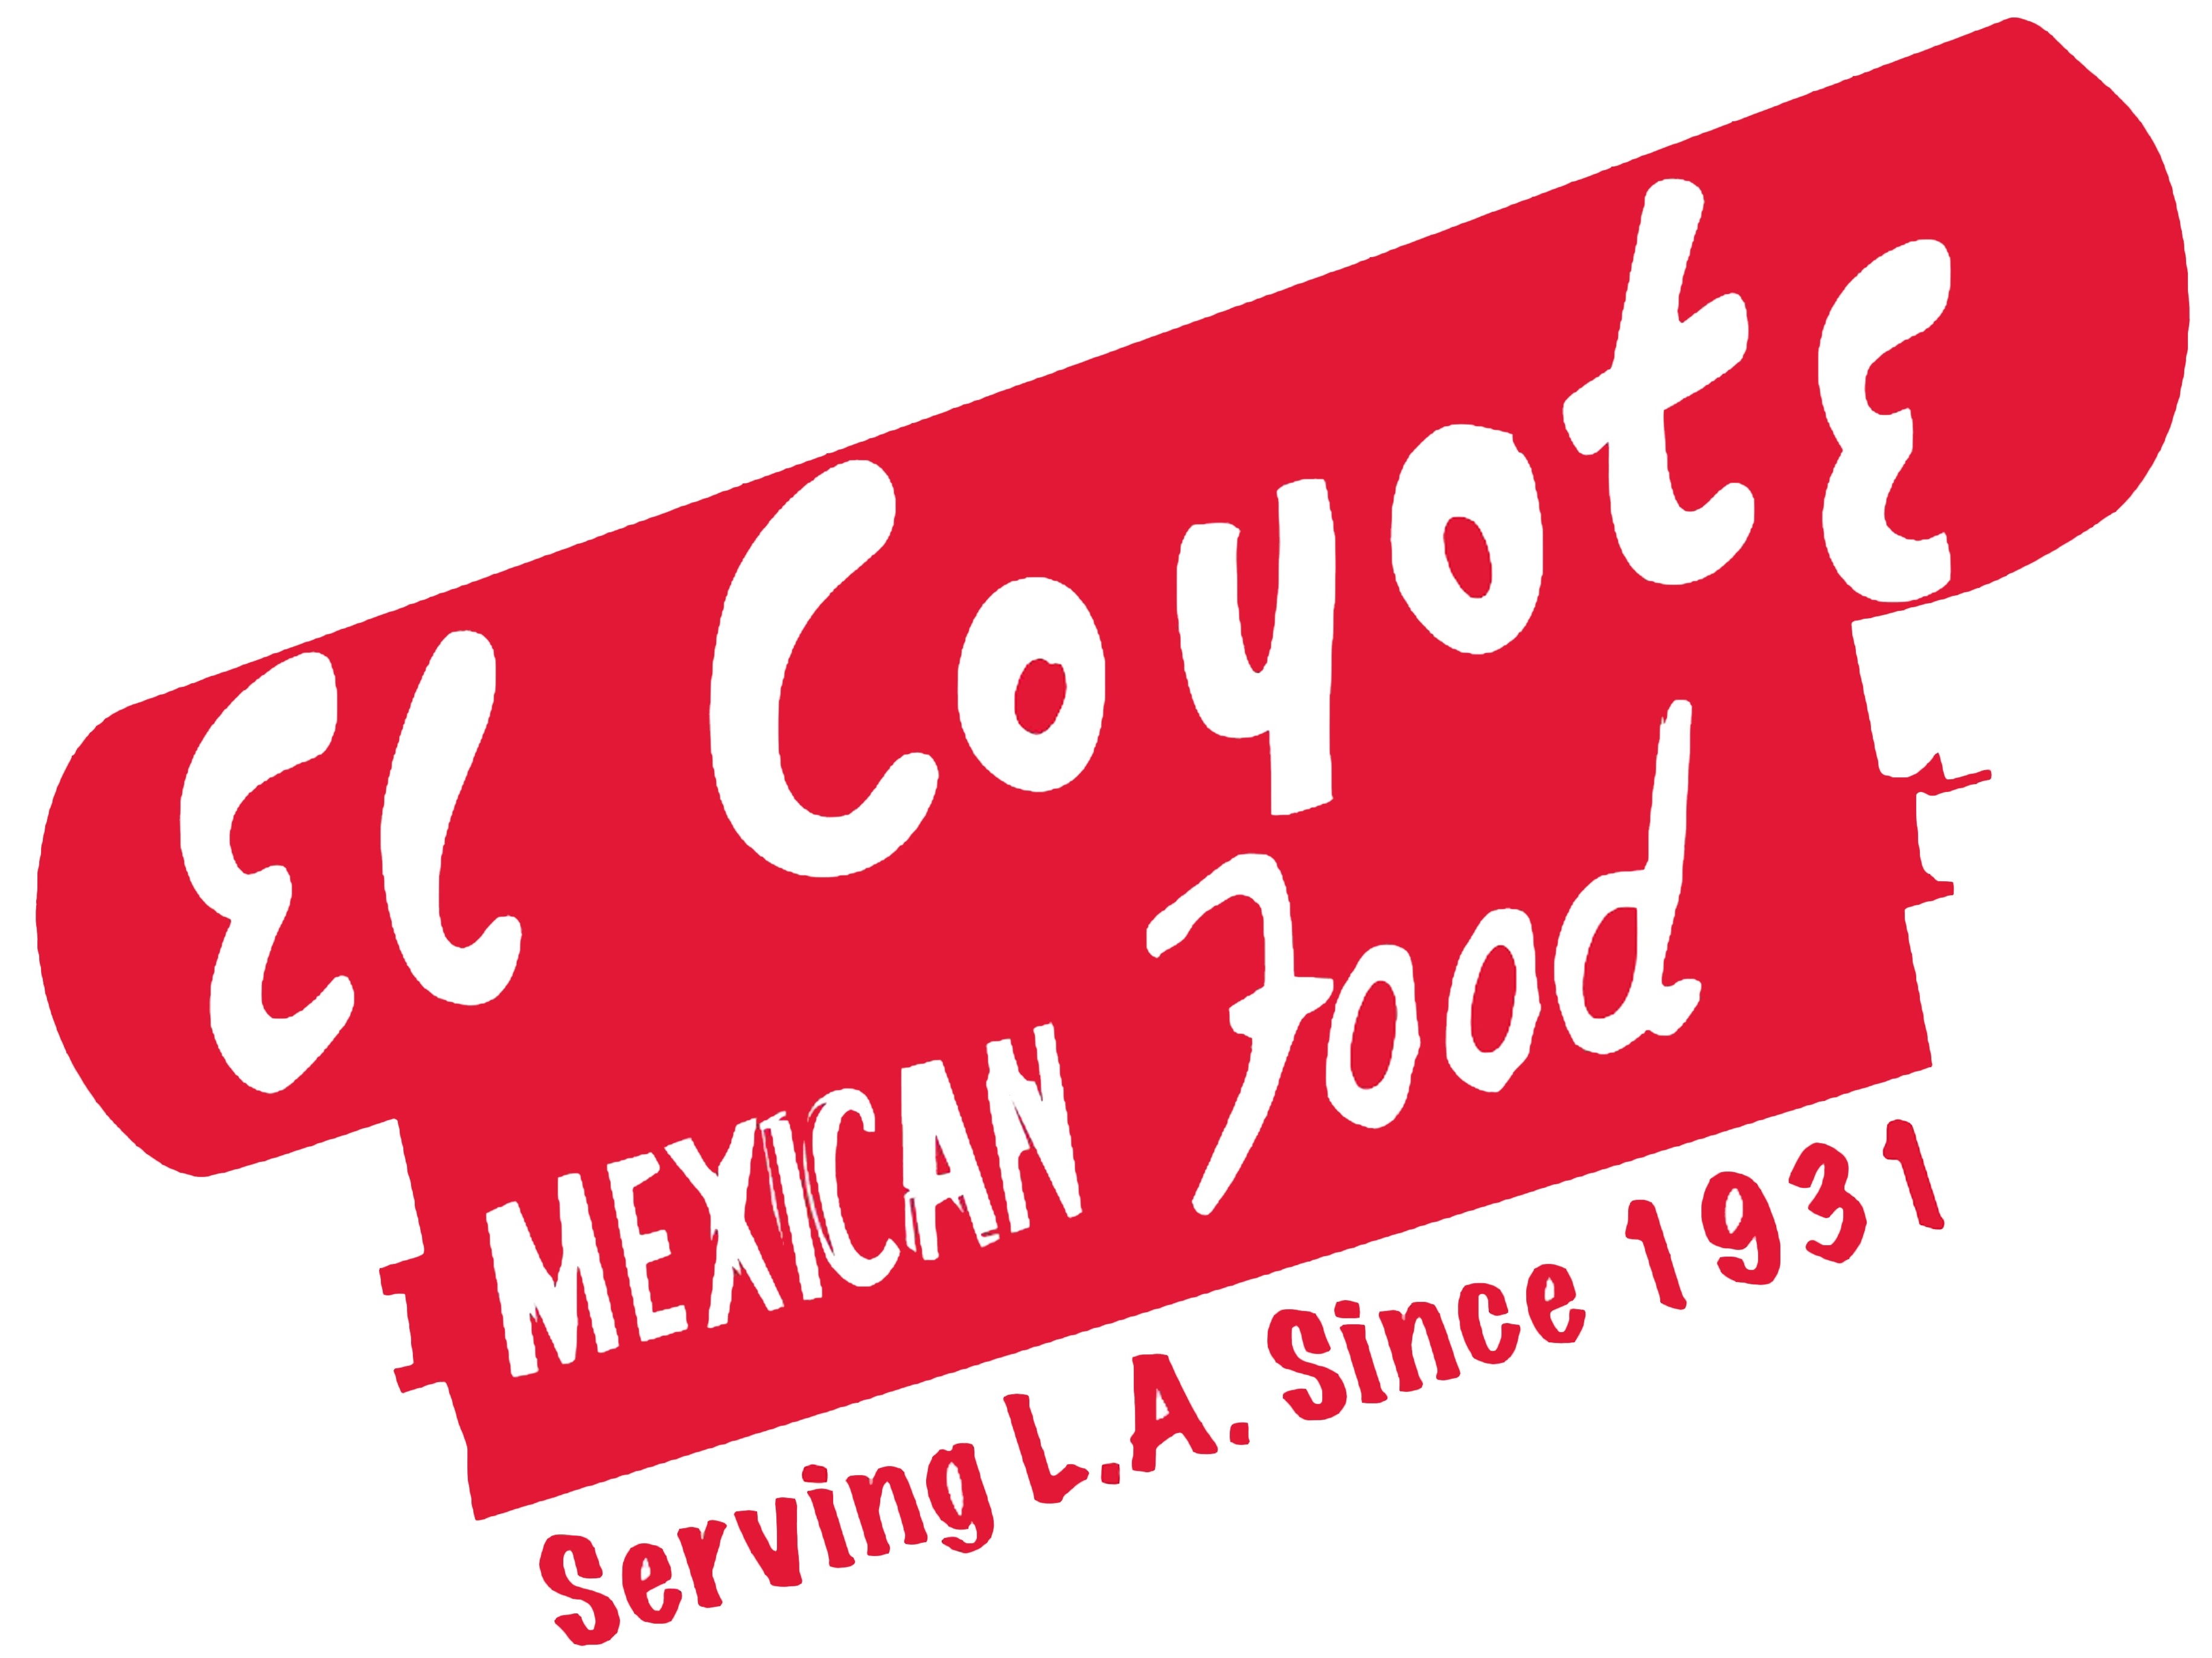 El Coyote Mexican Cafe